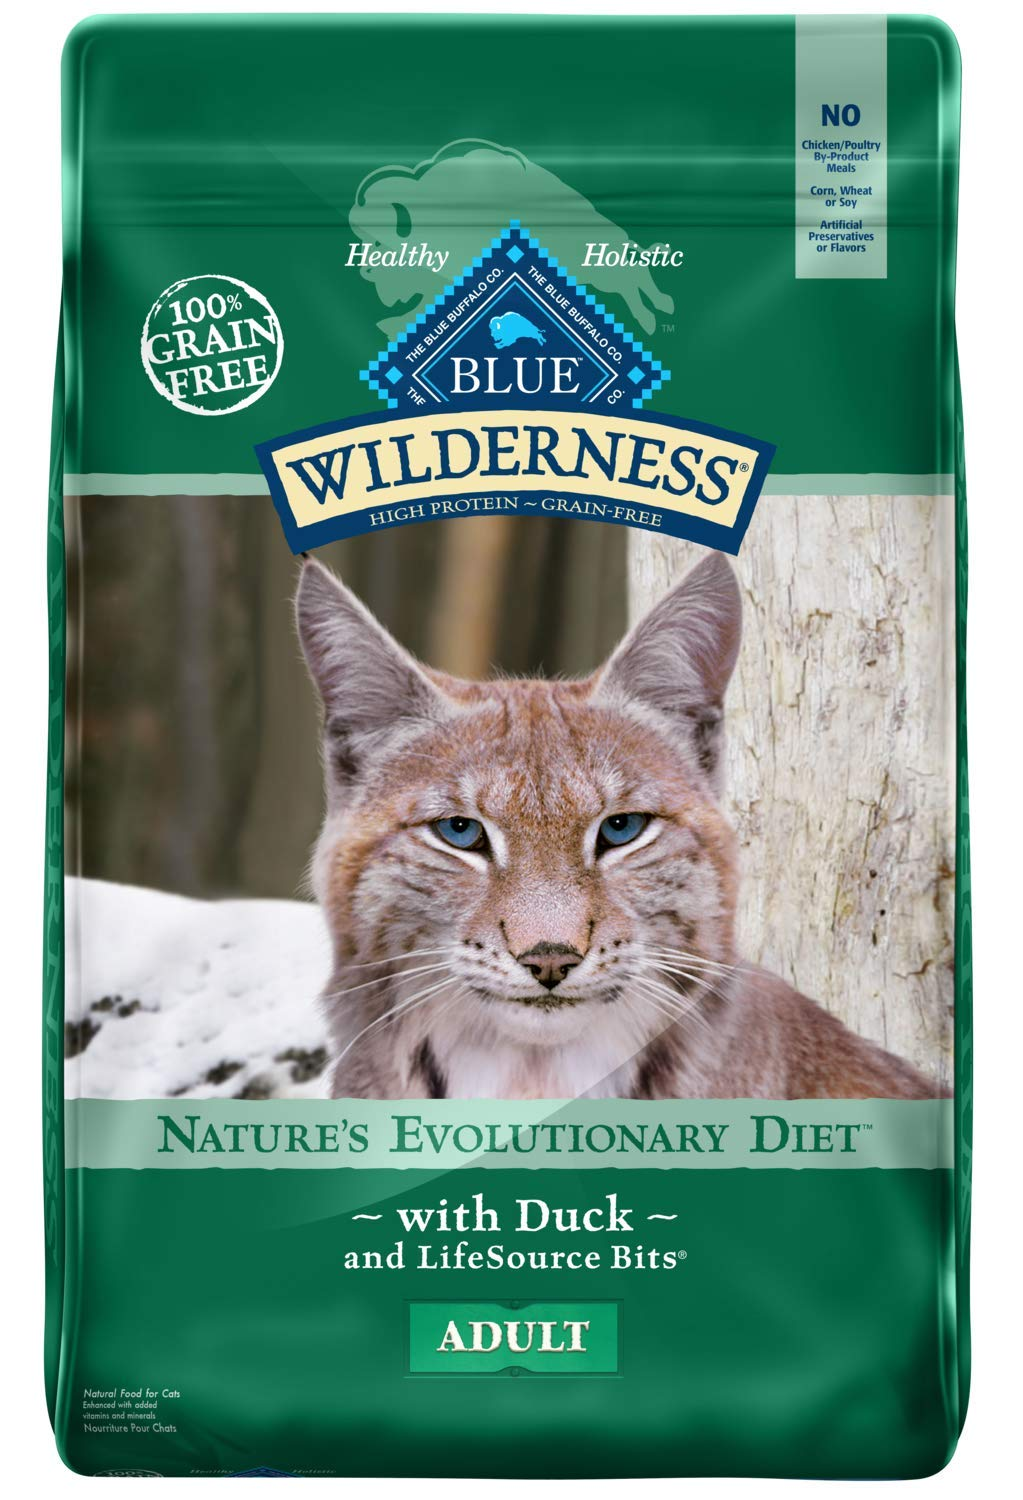 11 lb bluee Buffalo Wilderness High Predein Grain Free, Natural Adult Dry Cat Food, Duck 11-Lb